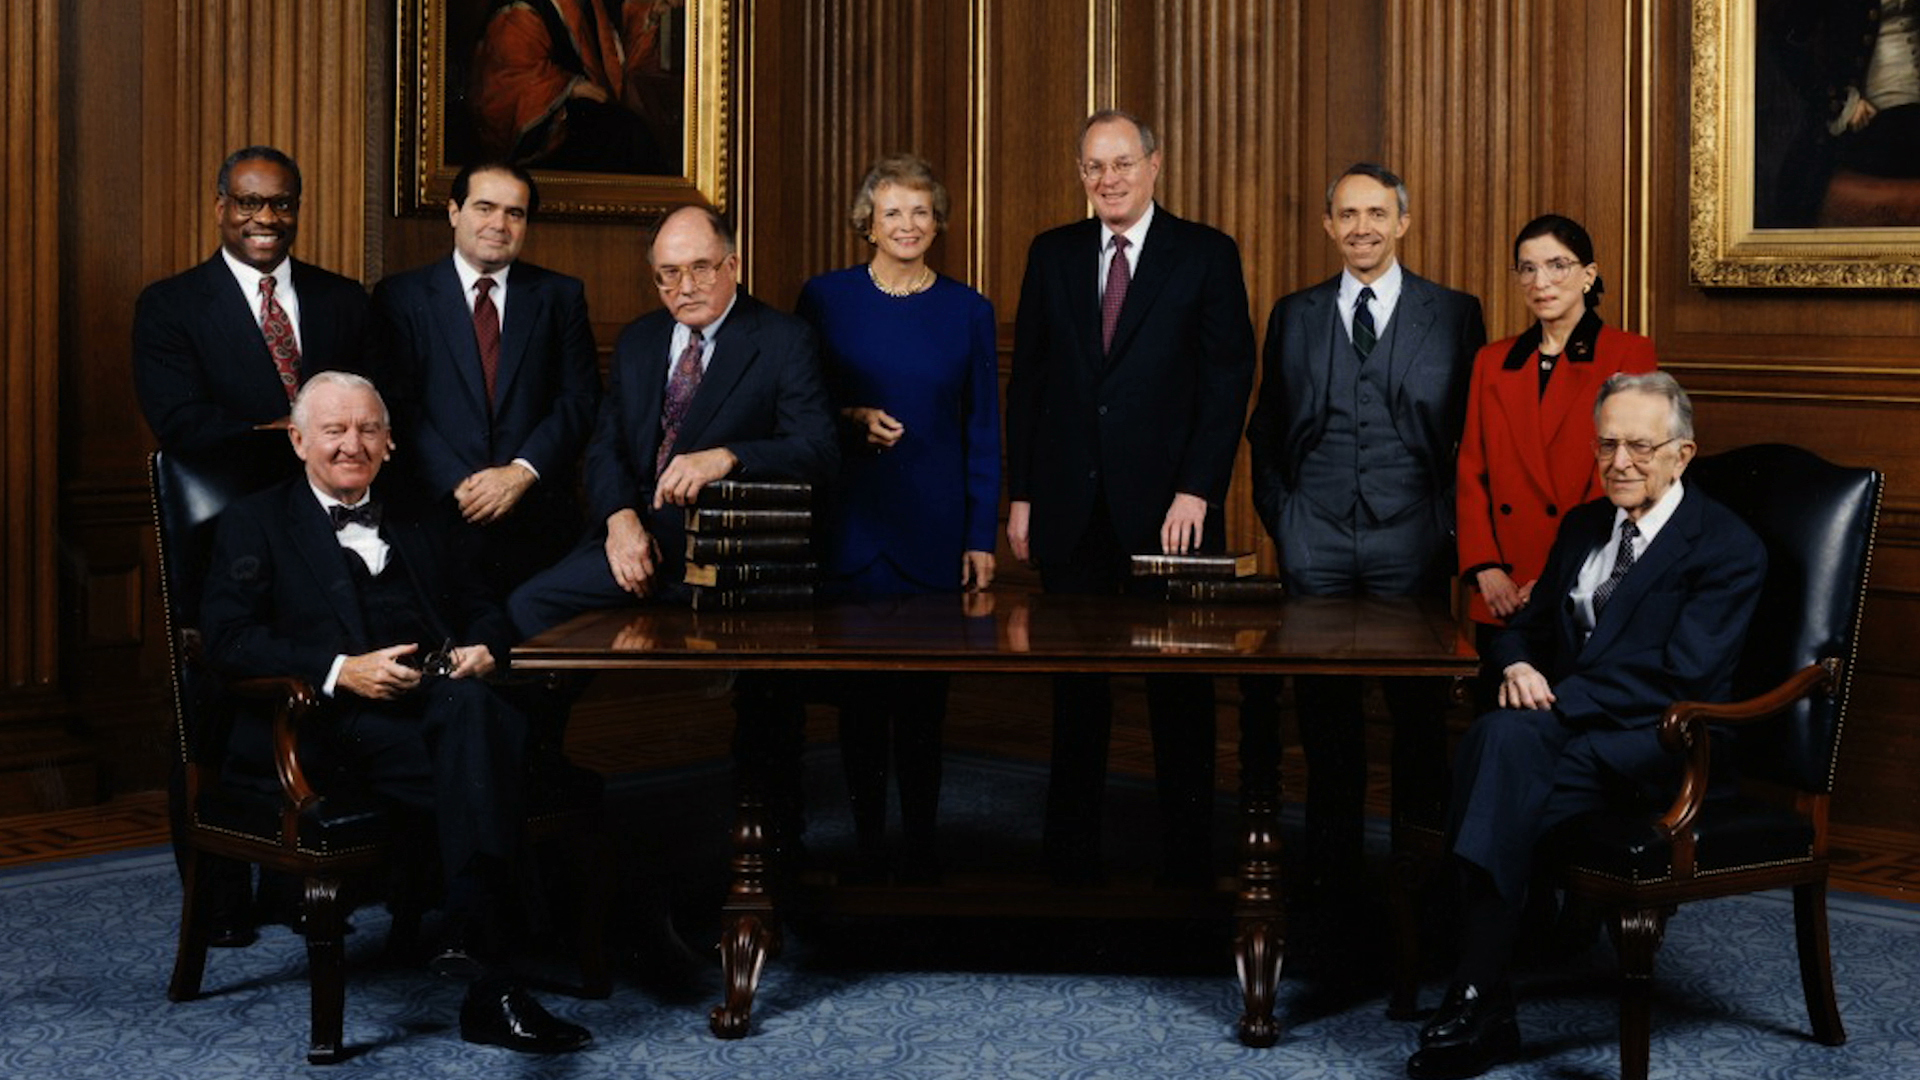 """The Supreme Court Justices, c. 1993, in """"RBG,"""" a Magnolia Pictures release. Justice Ginsburg is standing right. Photo courtesy of Magnolia Pictures/CNN Films."""